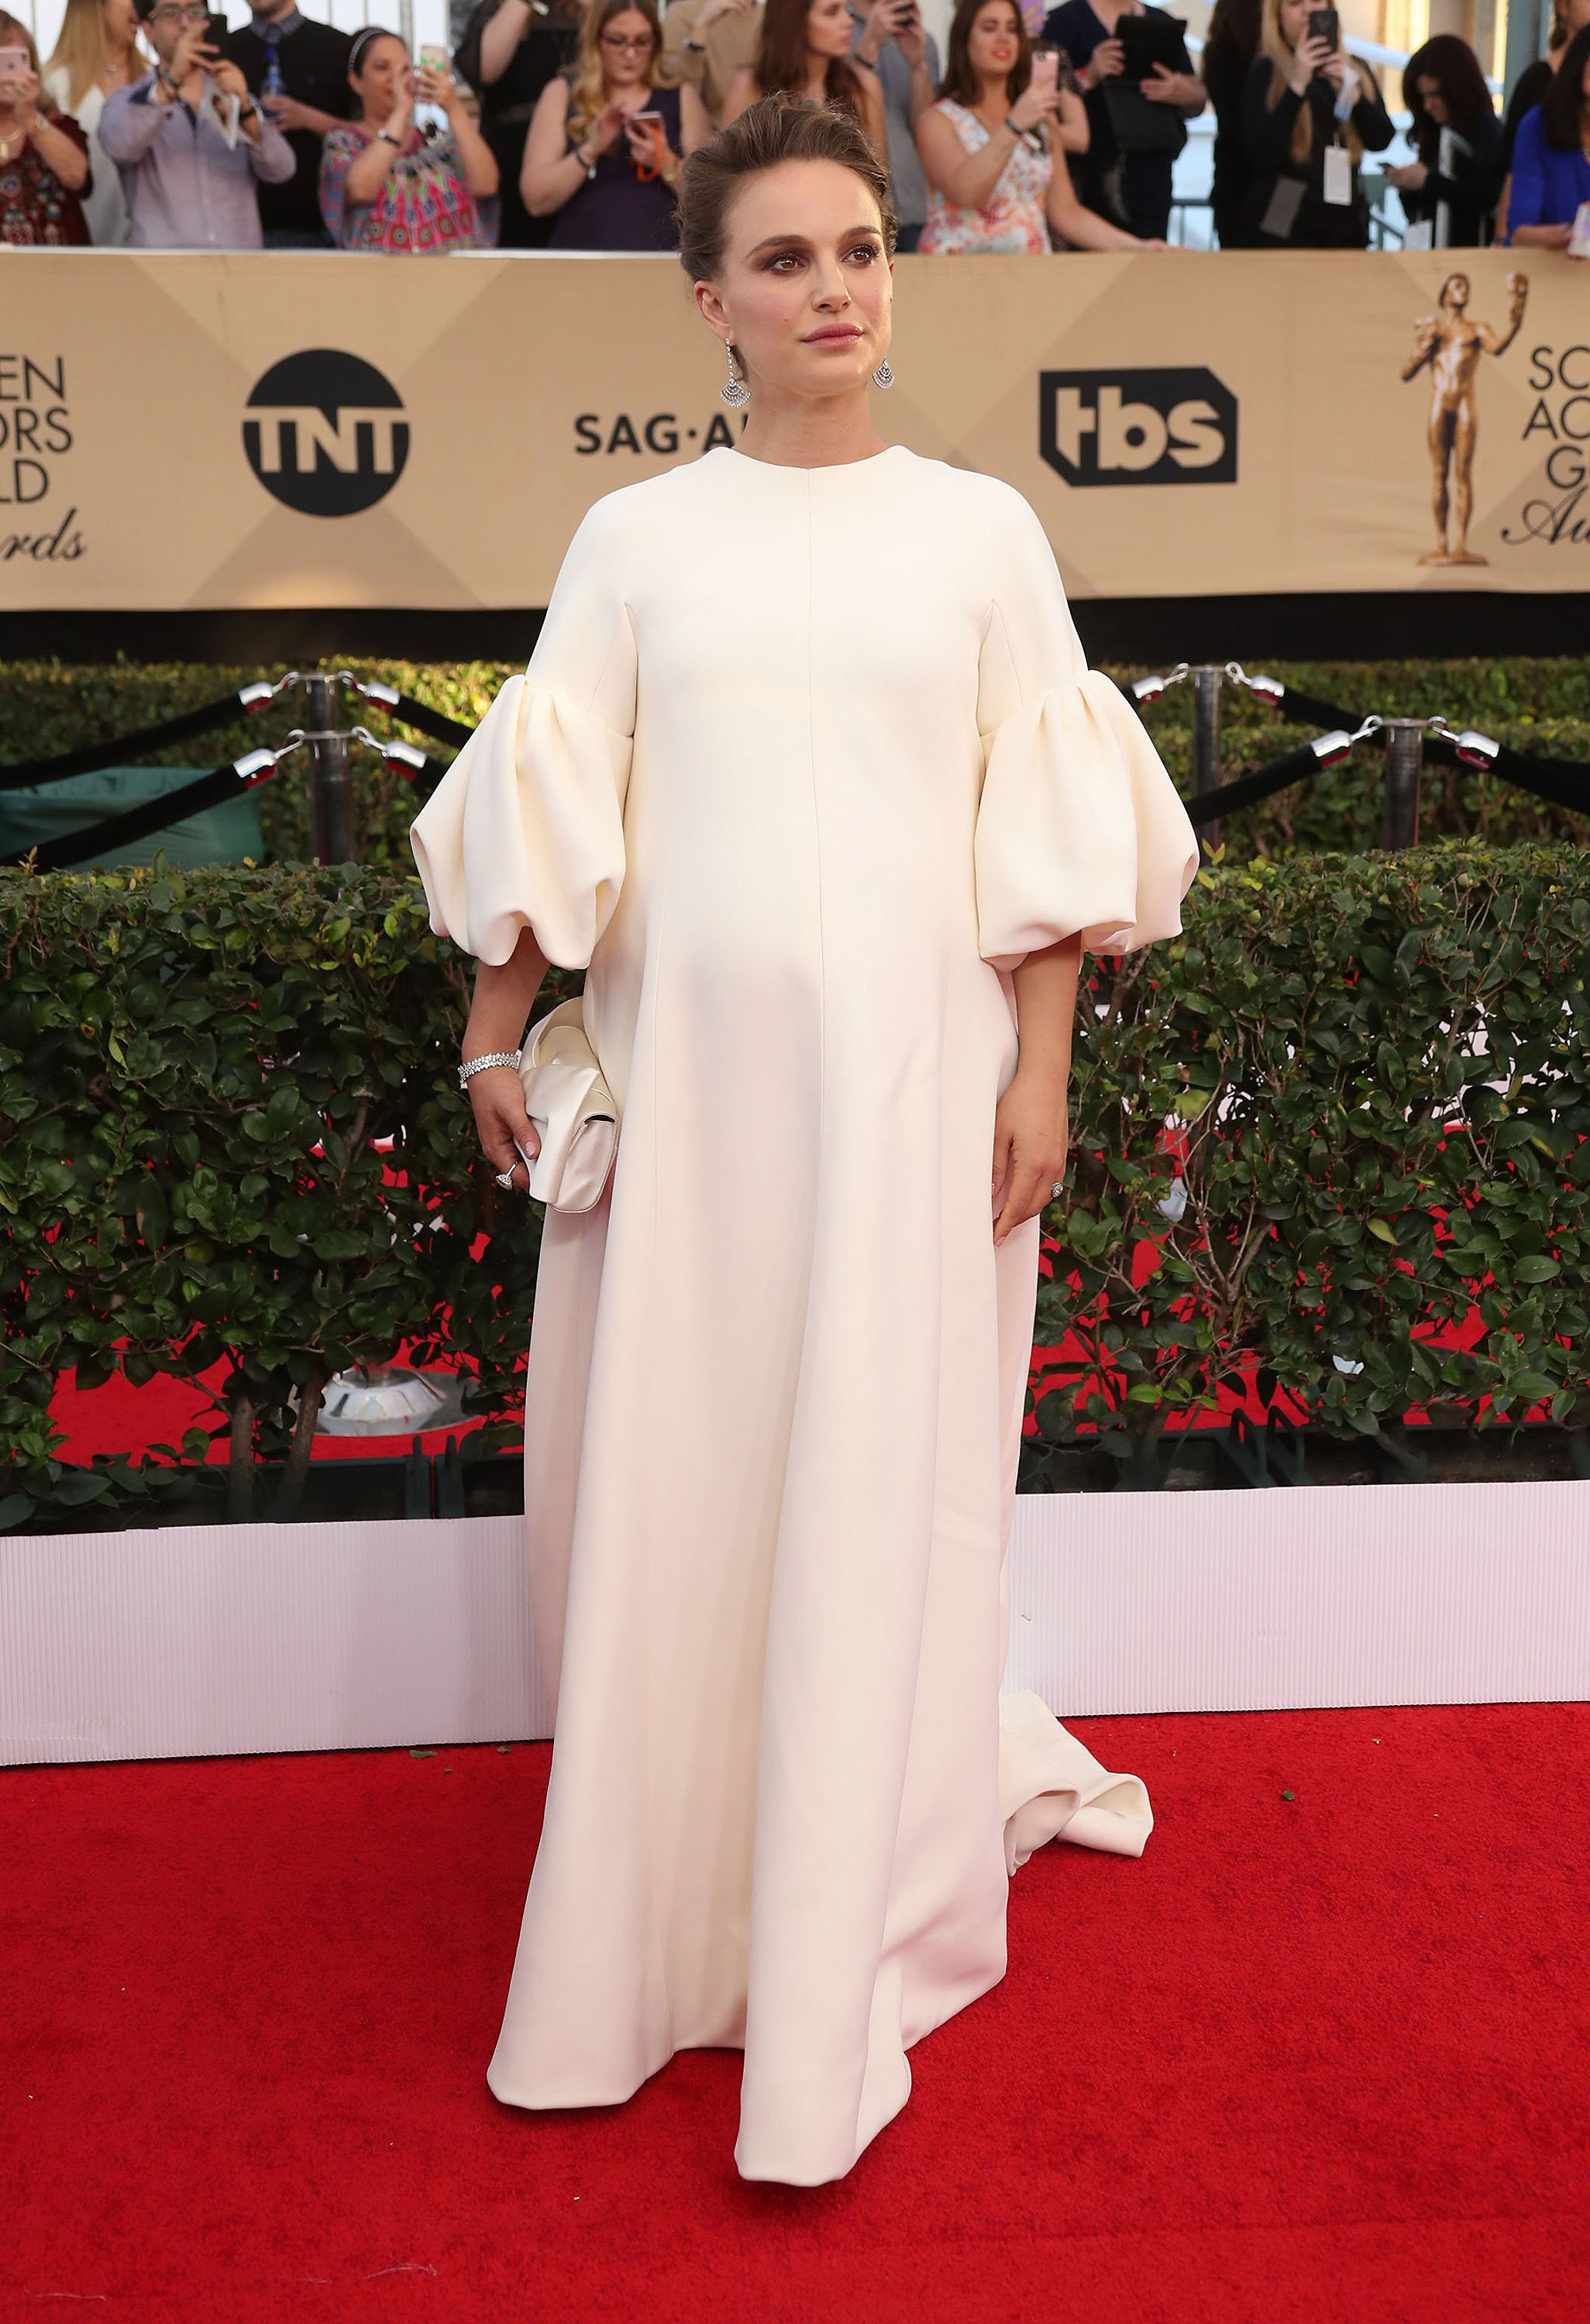 29 January 2017 - Los Angeles, California - Natalie Portman. 23rd Annual Screen Actors Guild Awards held at The Shrine Expo Hall. Photo, Image: 313863921, License: Rights-managed, Restrictions: , Model Release: no, Credit line: Profimedia, Insight Media